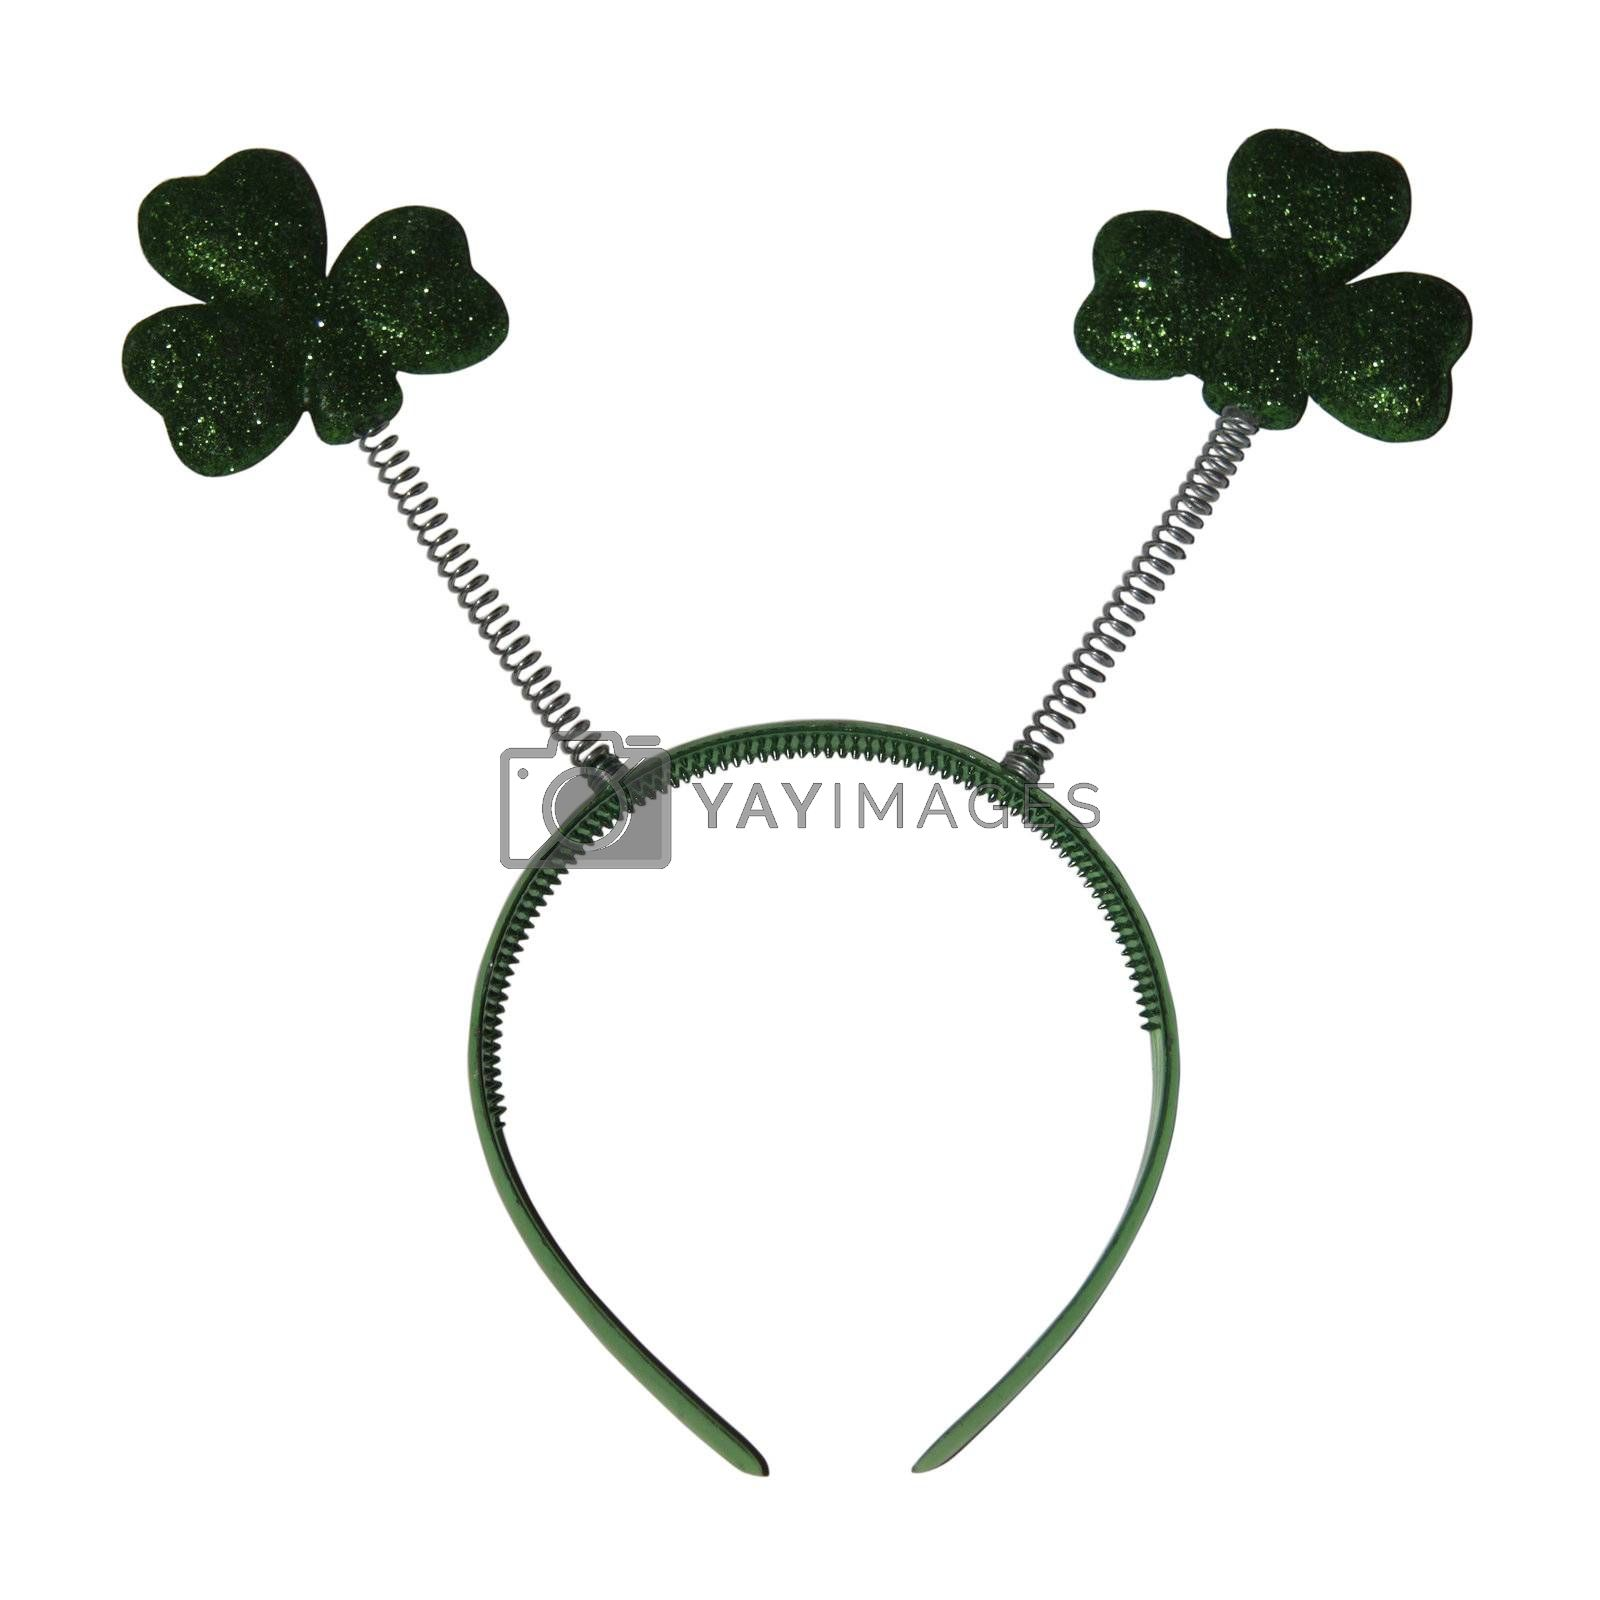 saint patricks day hair band